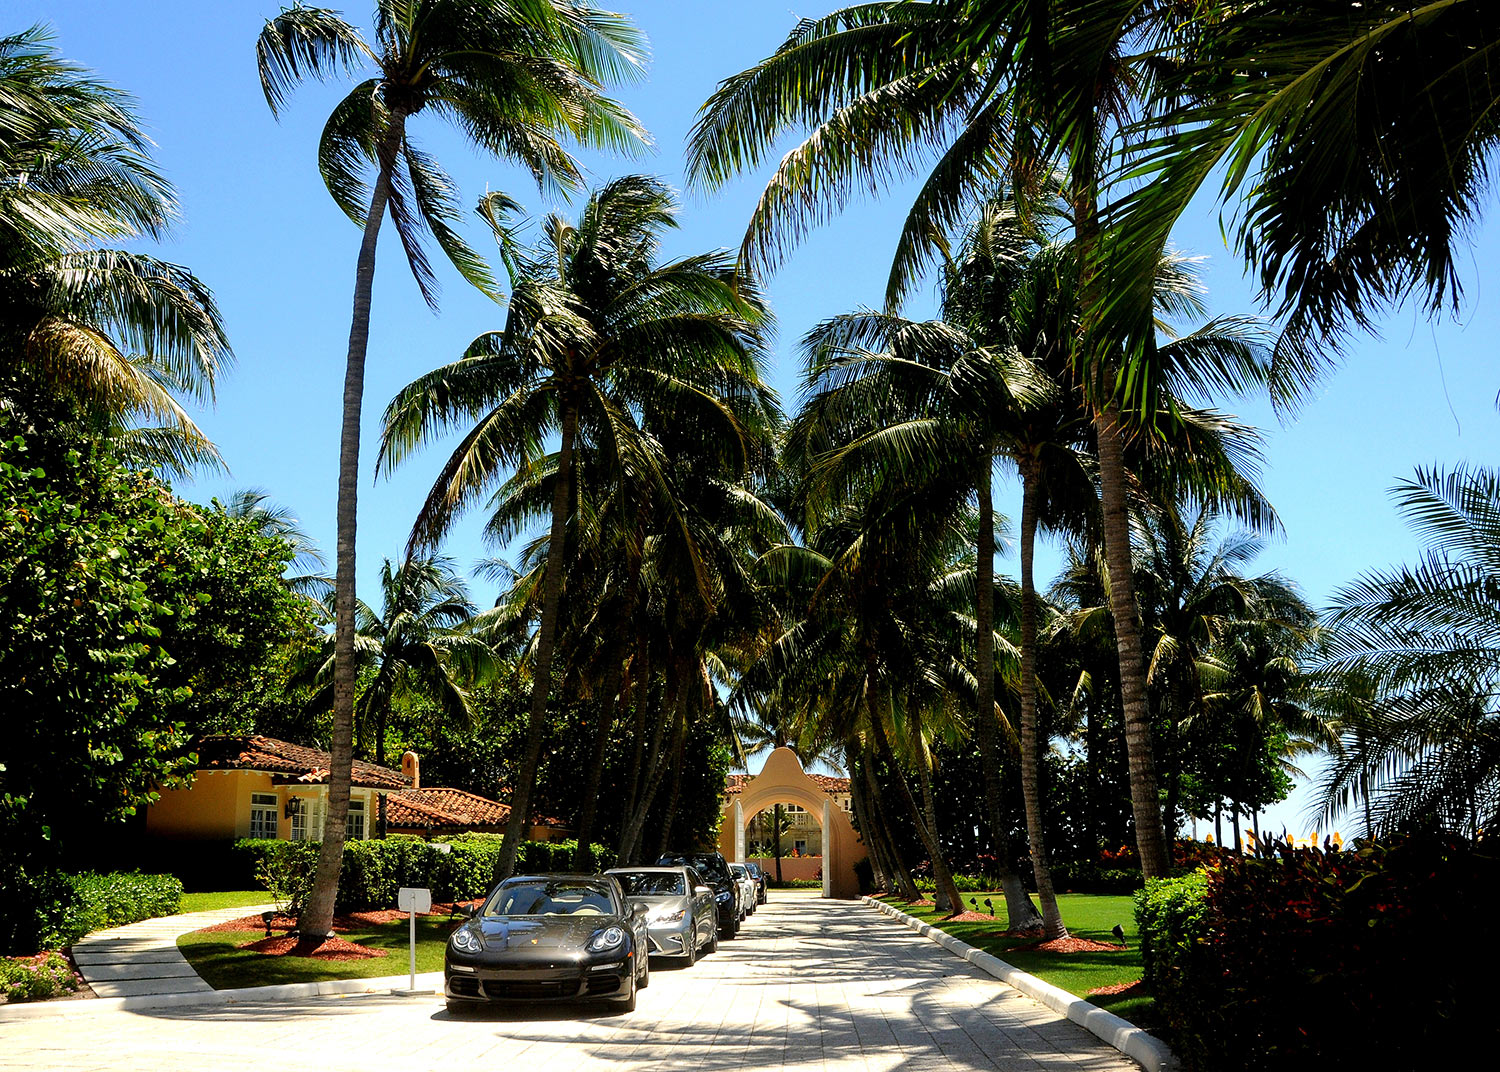 Sports cars line a driveway at President Donald Trump's Mar-a-Lago resort in Palm Beach, Florida.